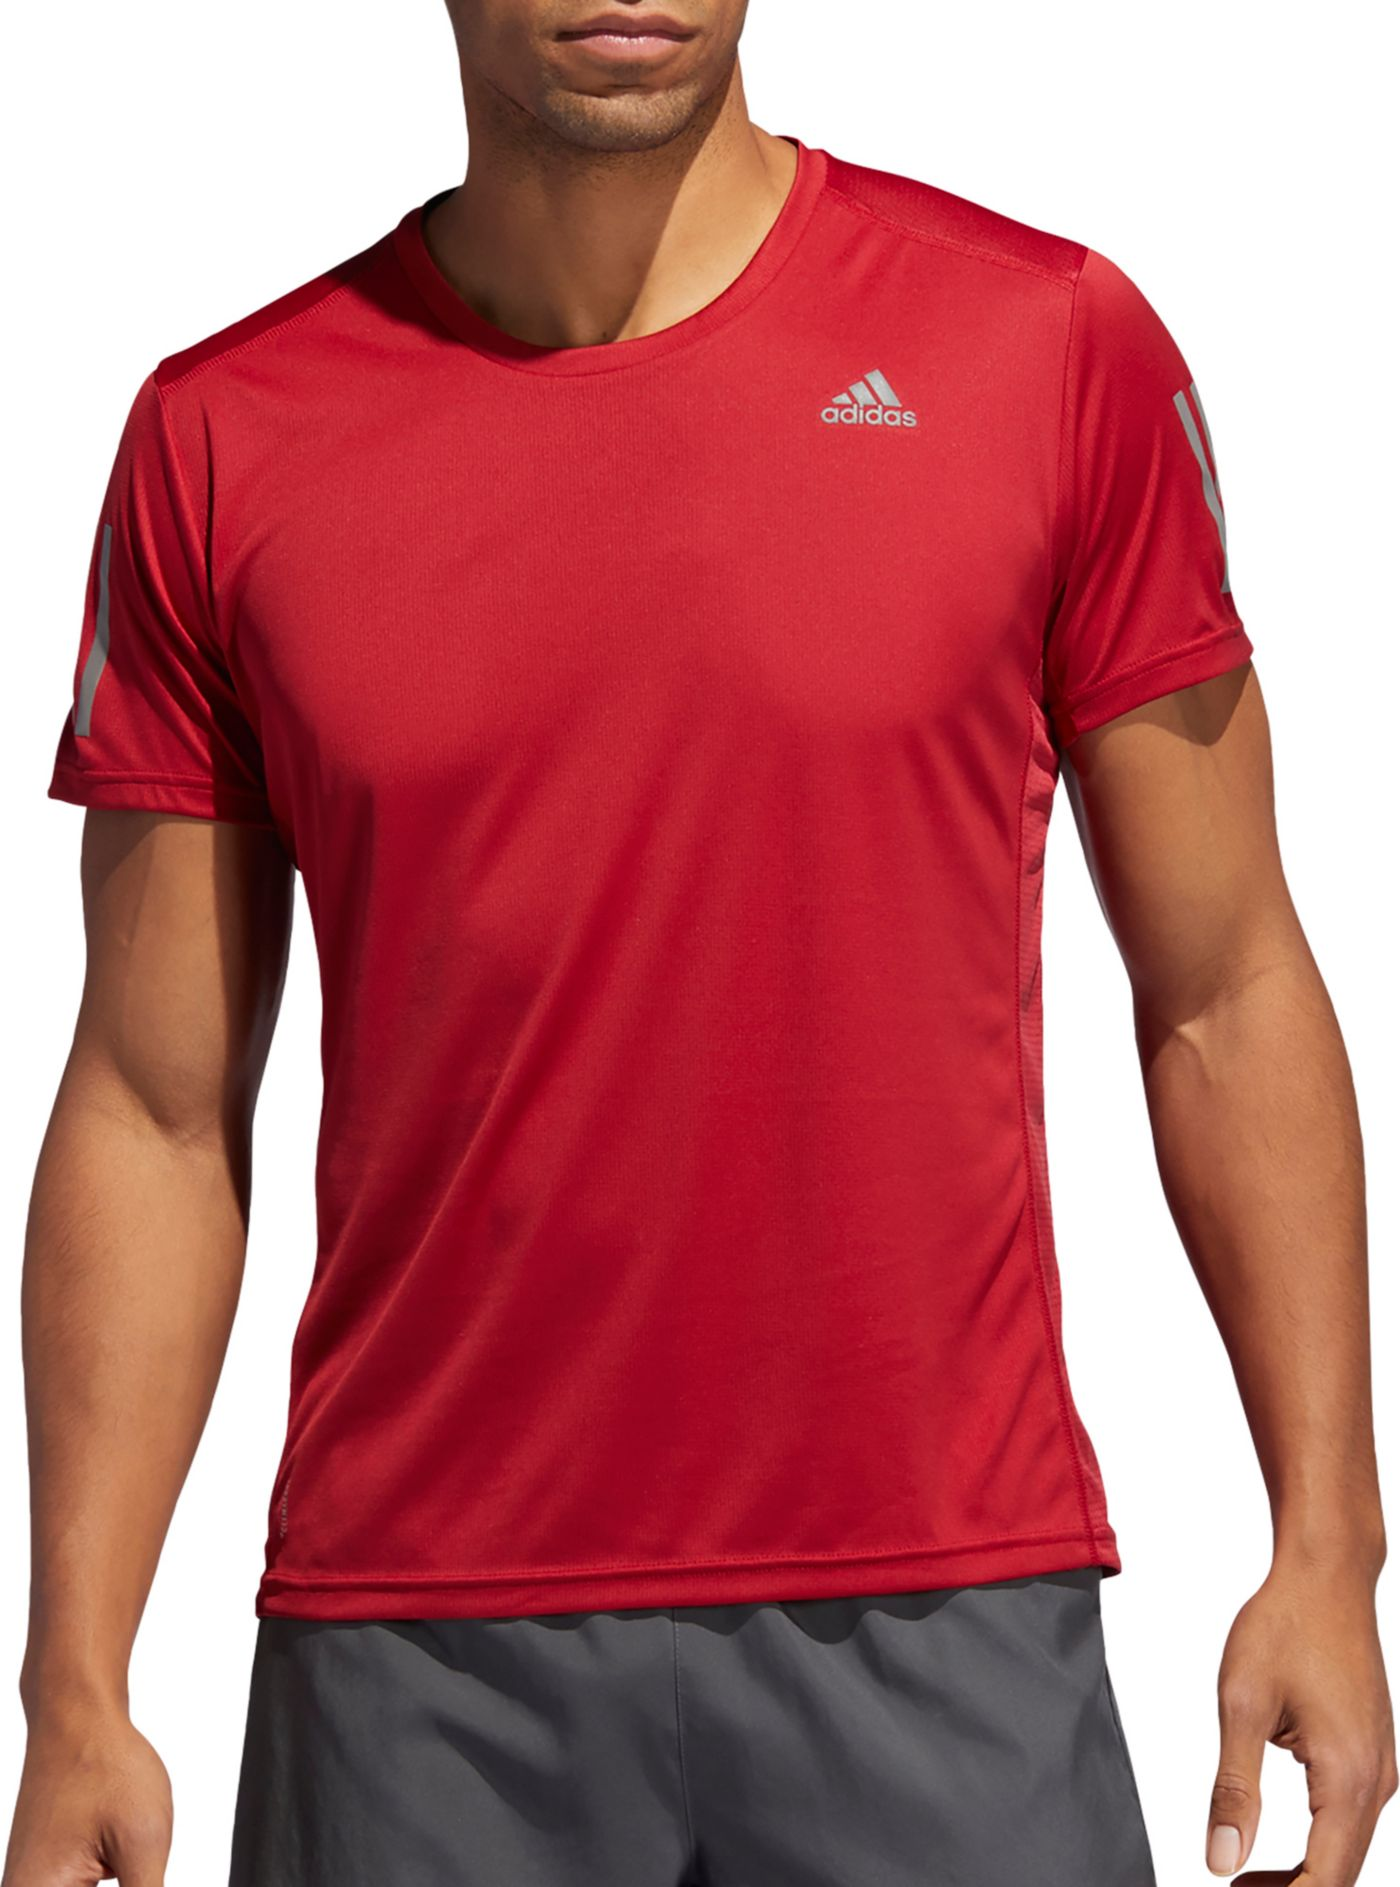 adidas Men's On The Run T-Shirt